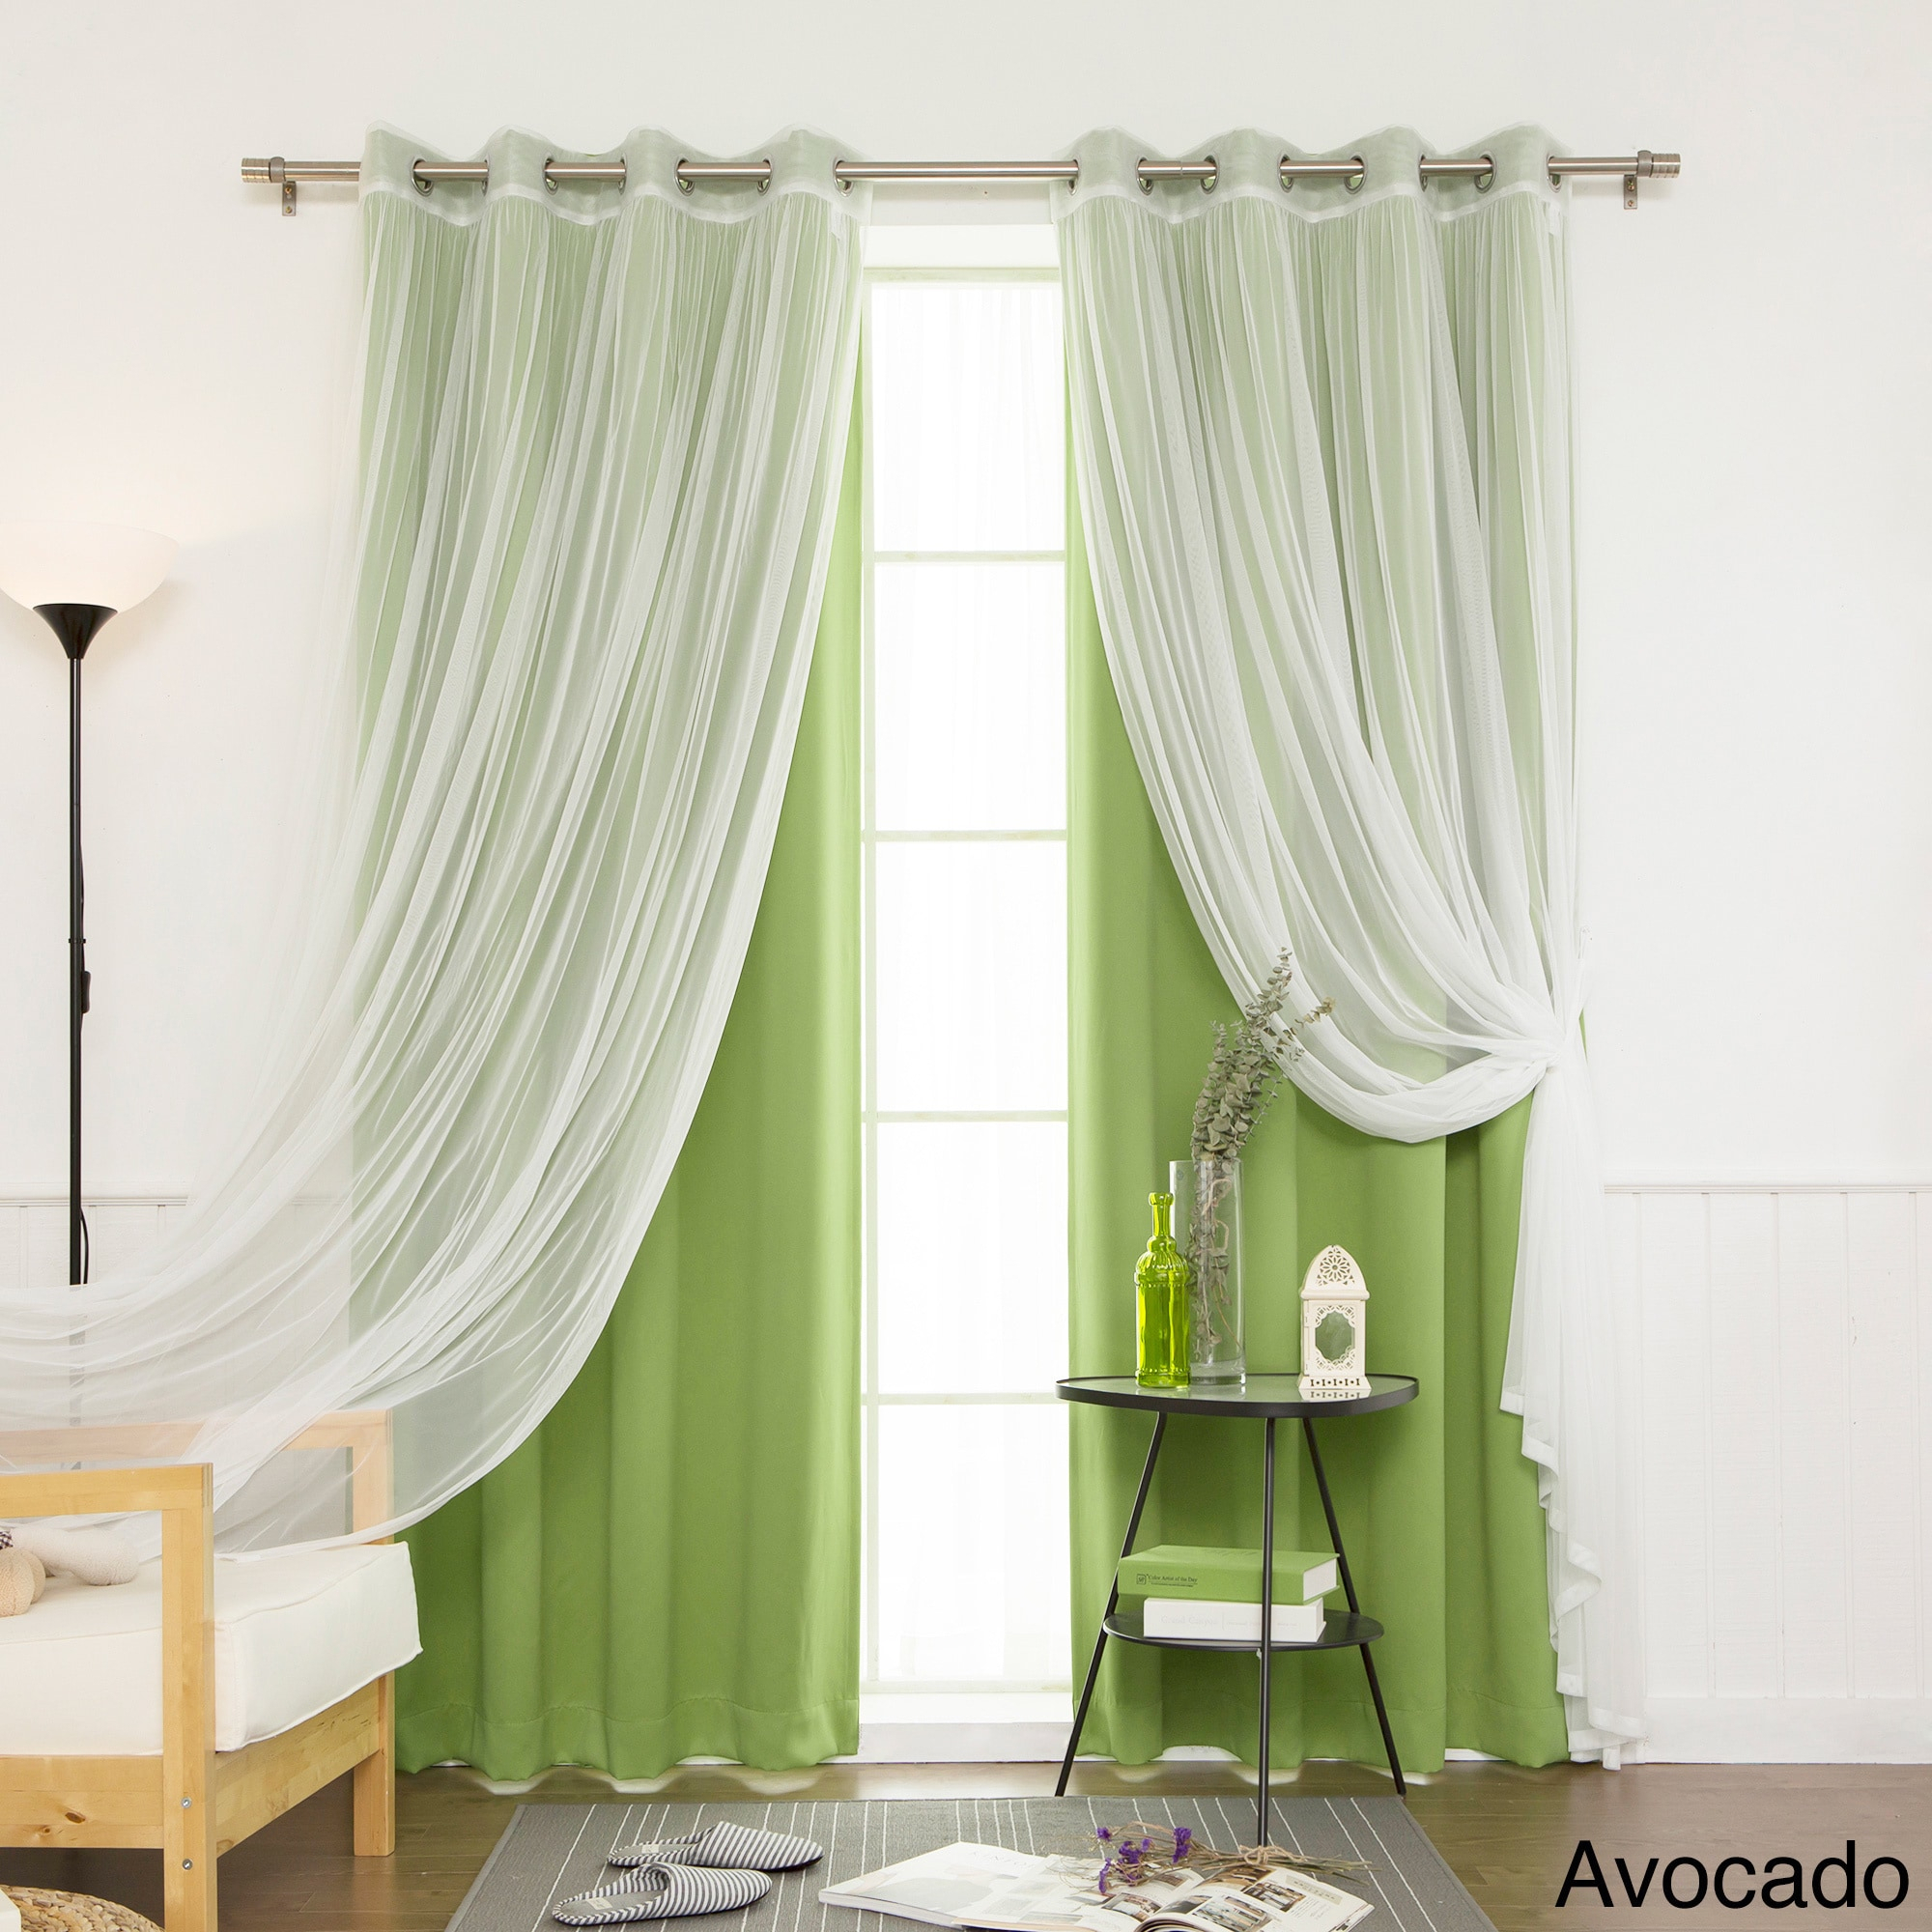 Aurora Home Mix & Match Blackout And Sheer Tulle Lace 4 Piece Curtain Panel Set Throughout Mix And Match Blackout Tulle Lace Sheer Curtain Panel Sets (View 14 of 20)